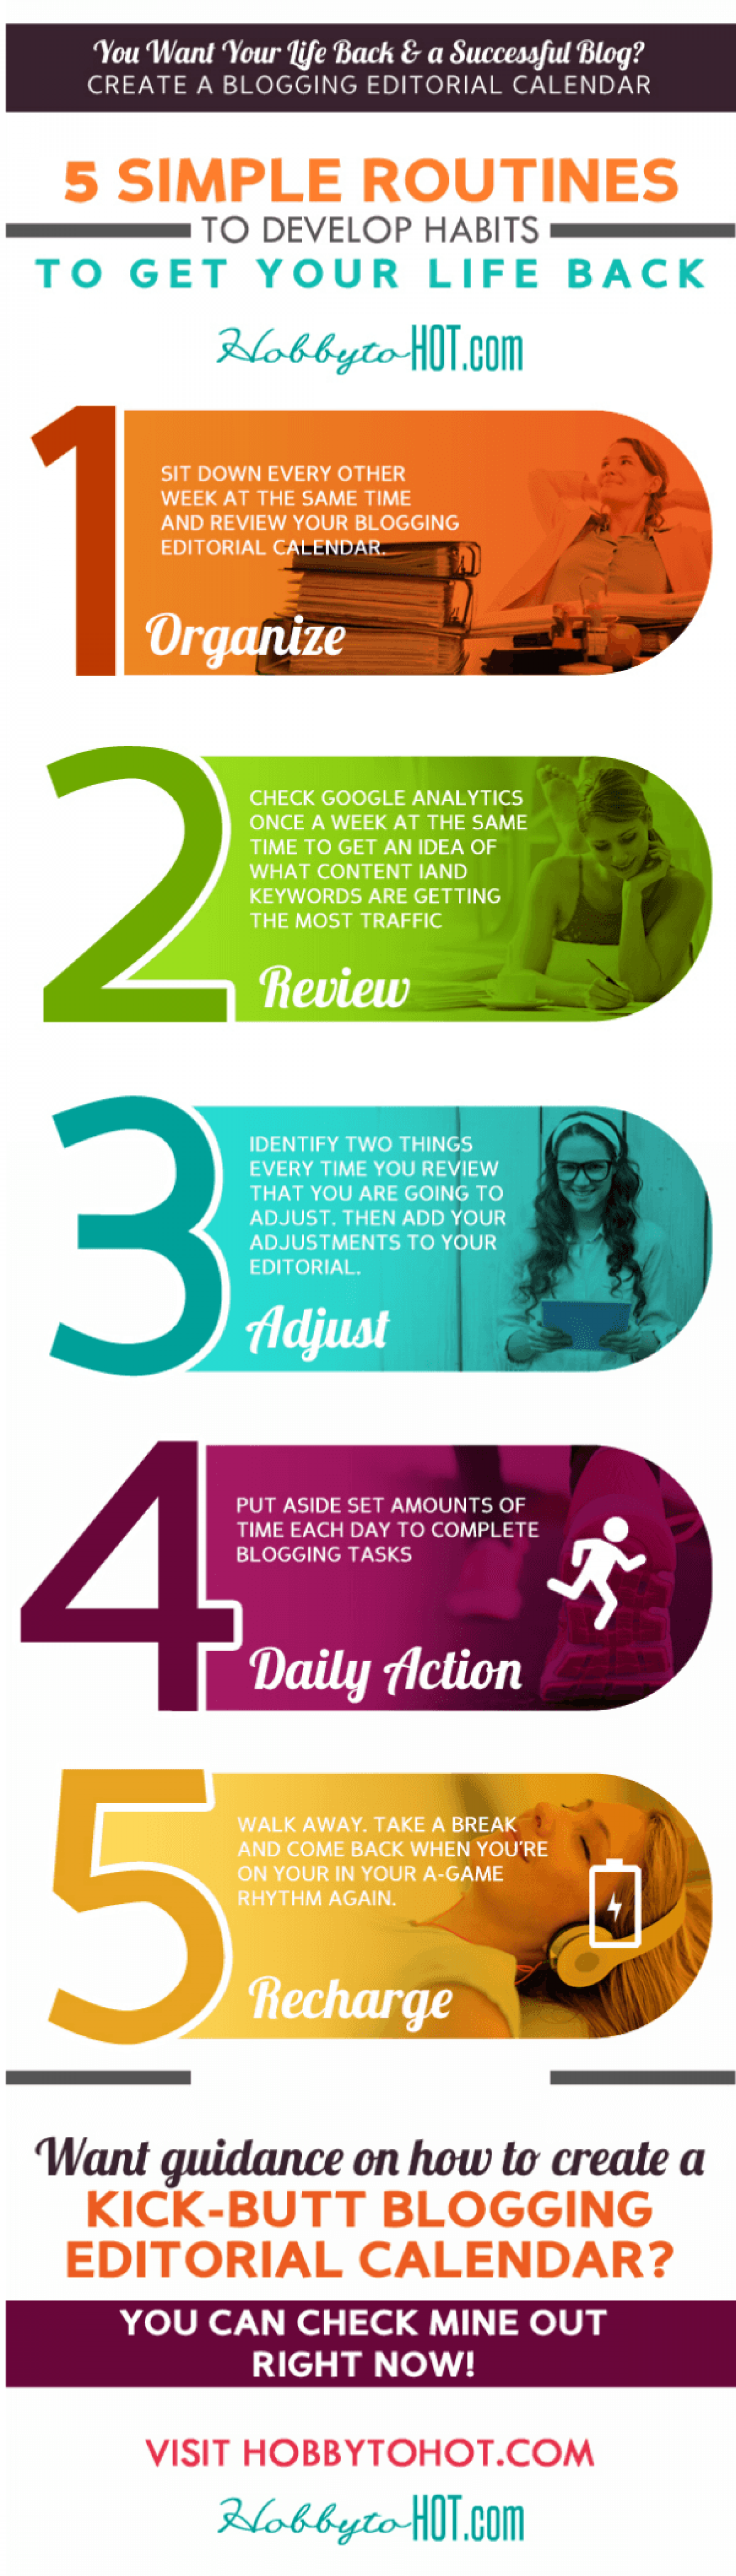 Is Blogging Overwhelming You? {5 Ways to Get Your Life Back} Infographic